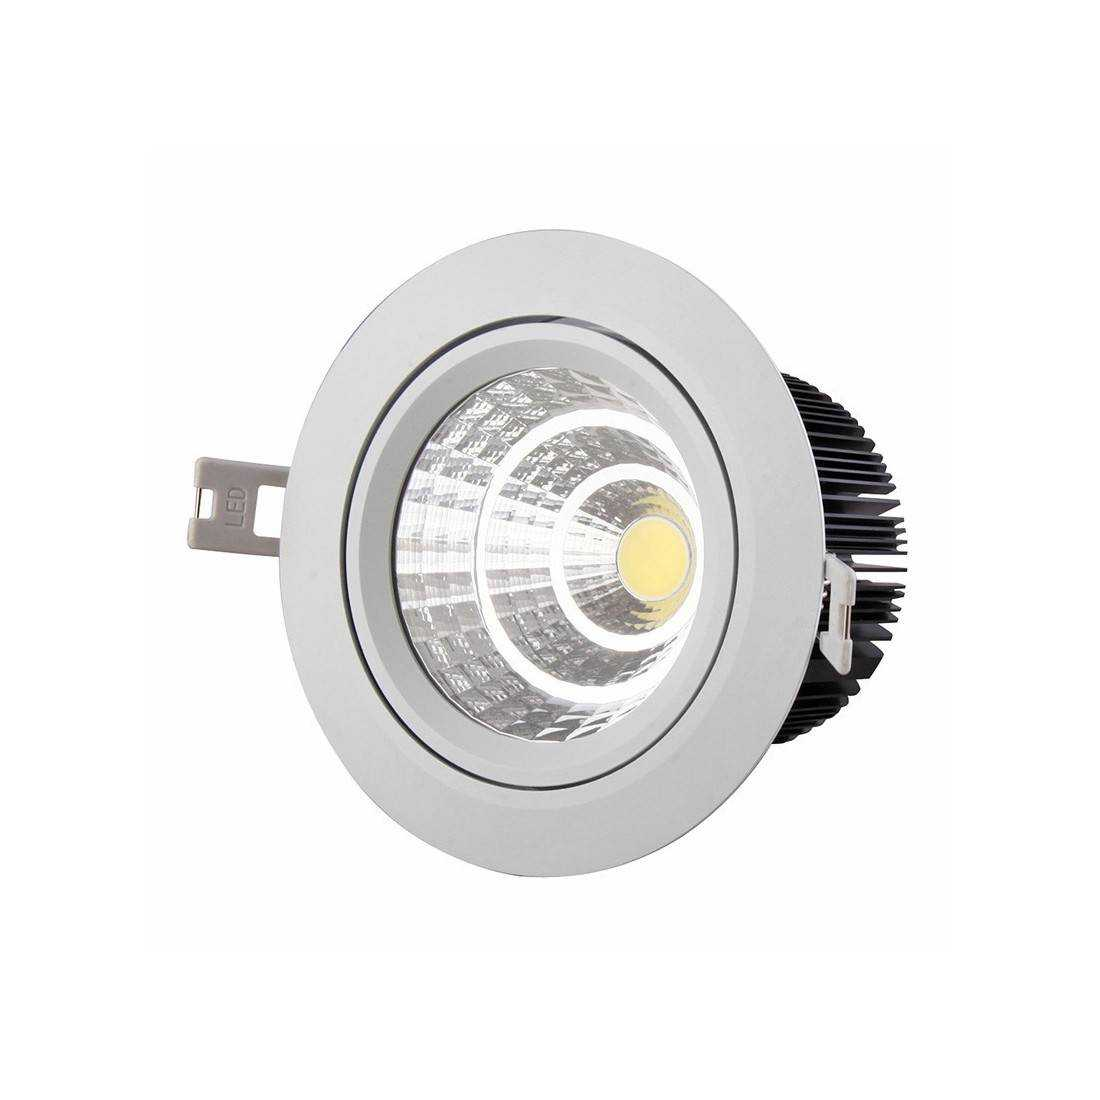 Spot led cob encastrable 7w 230v for Spot led interieur encastrable